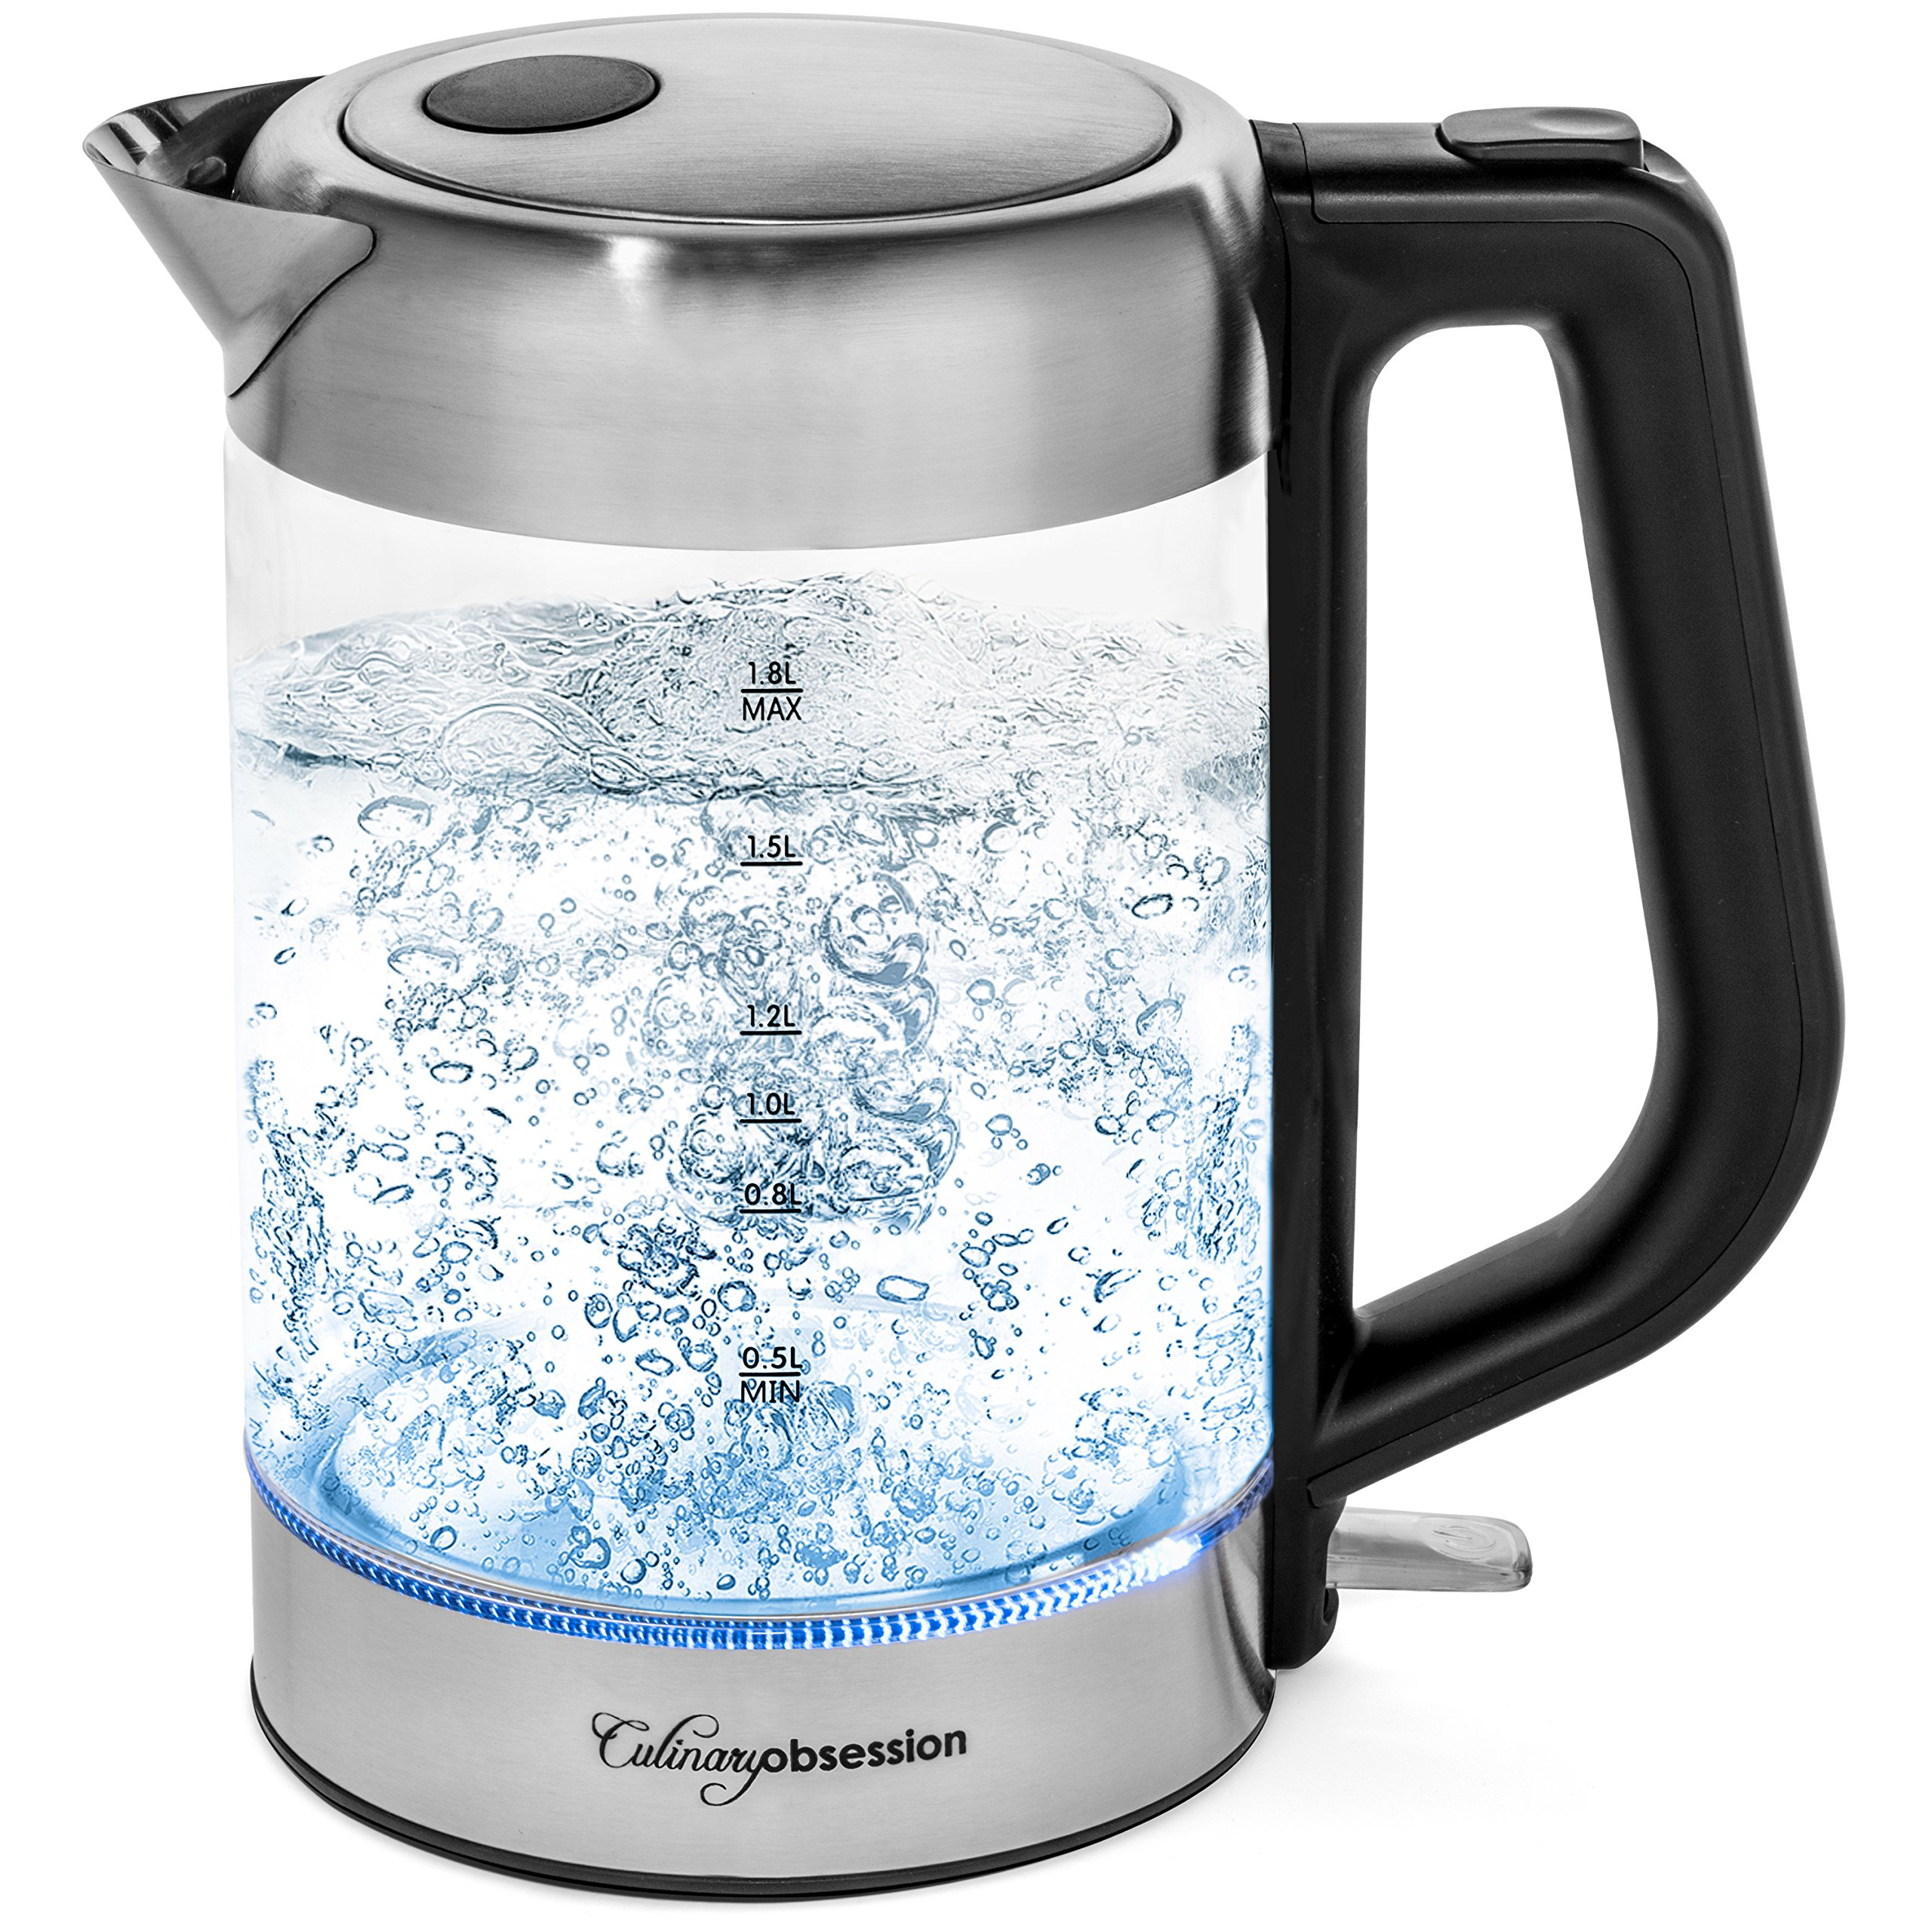 Glass Electric Kettle | BPA Free with Borosilicate Glass & Stainless Steel - 1.8 Liter Rapid Boil Cordless Teapot with Automatic Shut Off - the Best Hot Water Heater for Tea, Coffee, Soup, and More! by Culinary Obsession